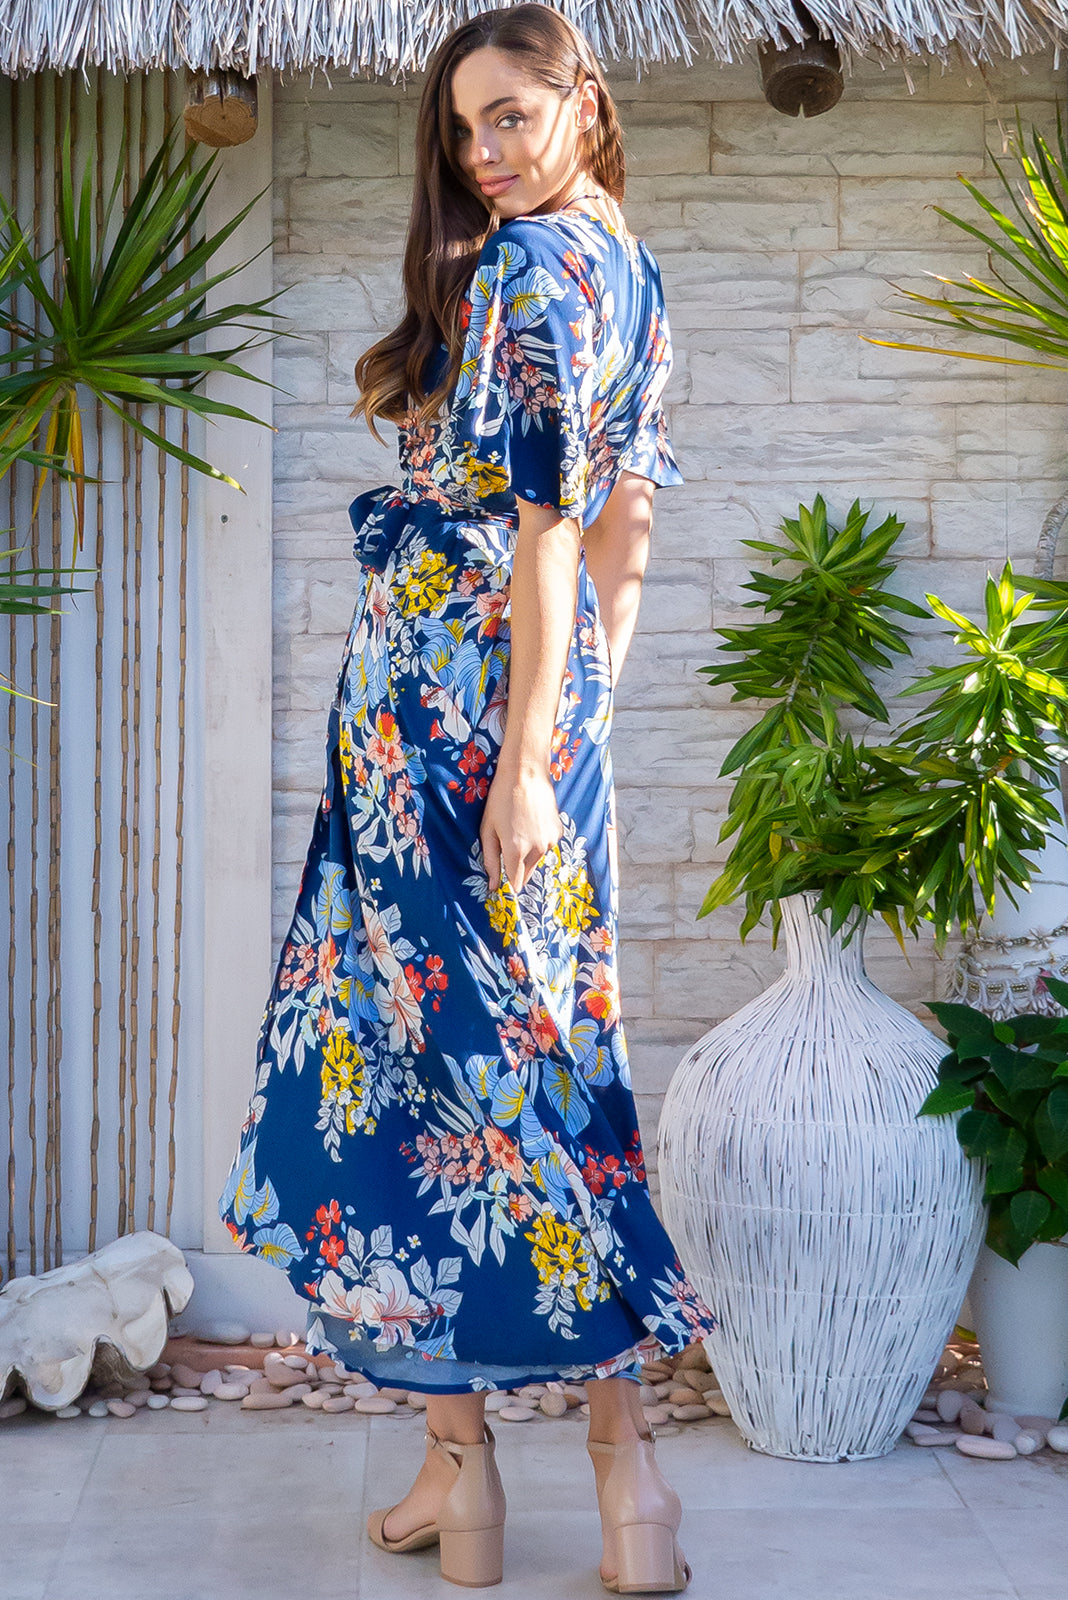 The Petal Naviti Blue Maxi Wrap Dress is a beautiful tropical print dress featuring Floaty petal sleeves, blue base with white, yellow, coral, peach and baby blue floral print in woven 100% rayon.